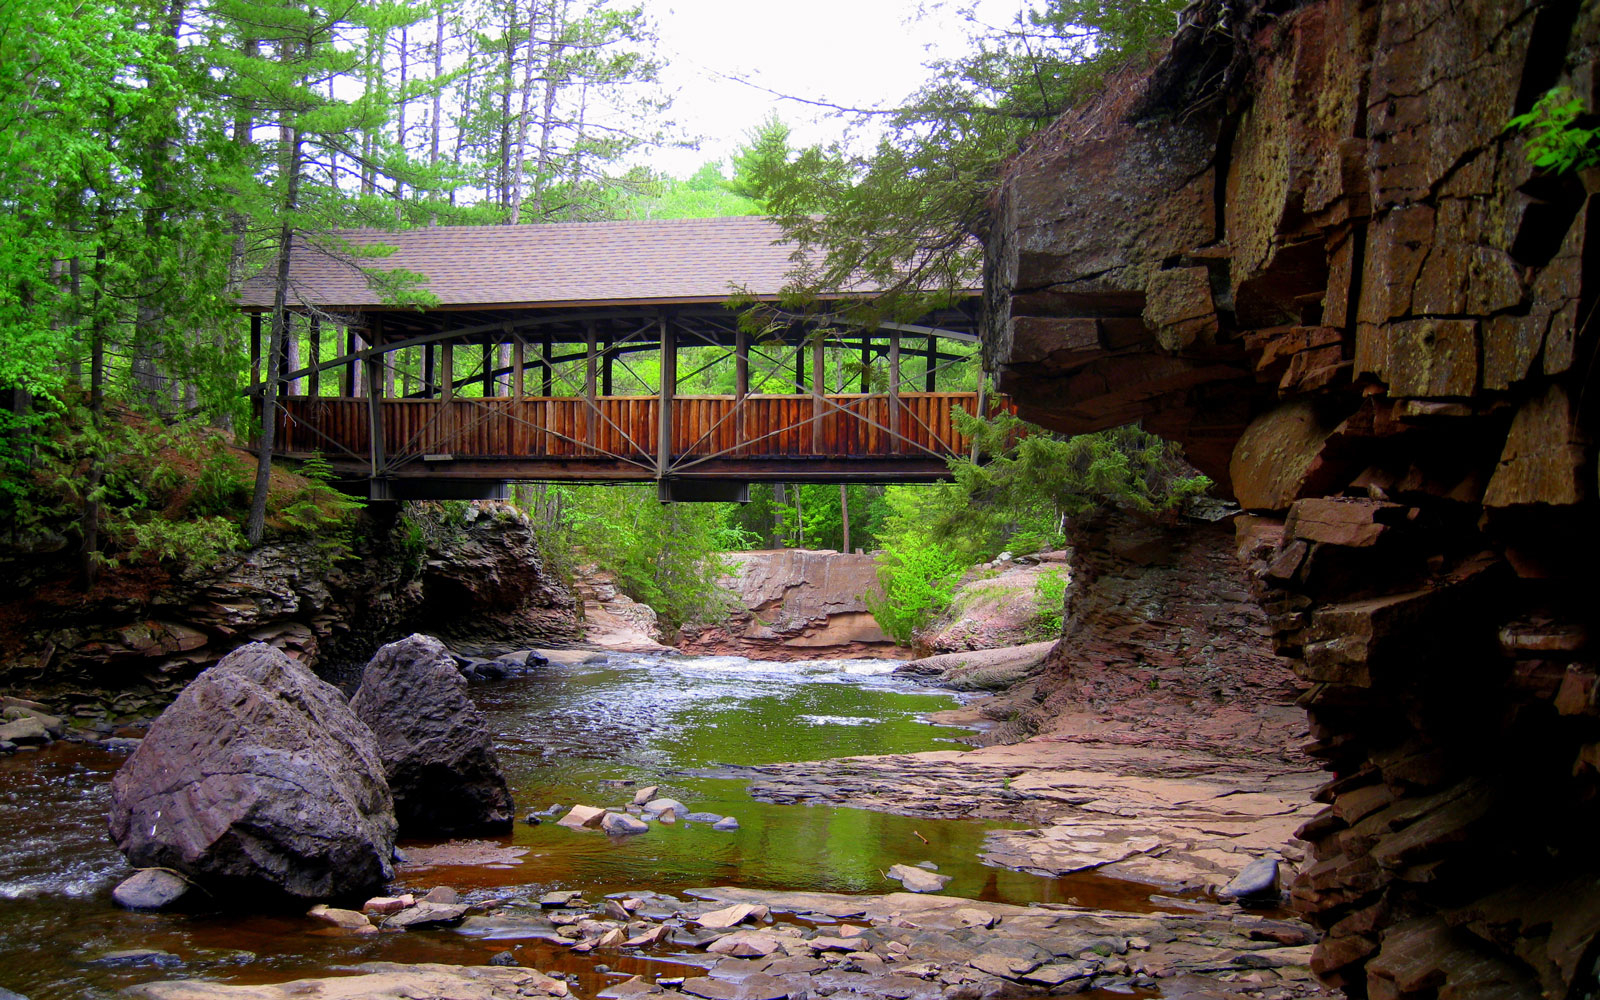 amnion falls bridge